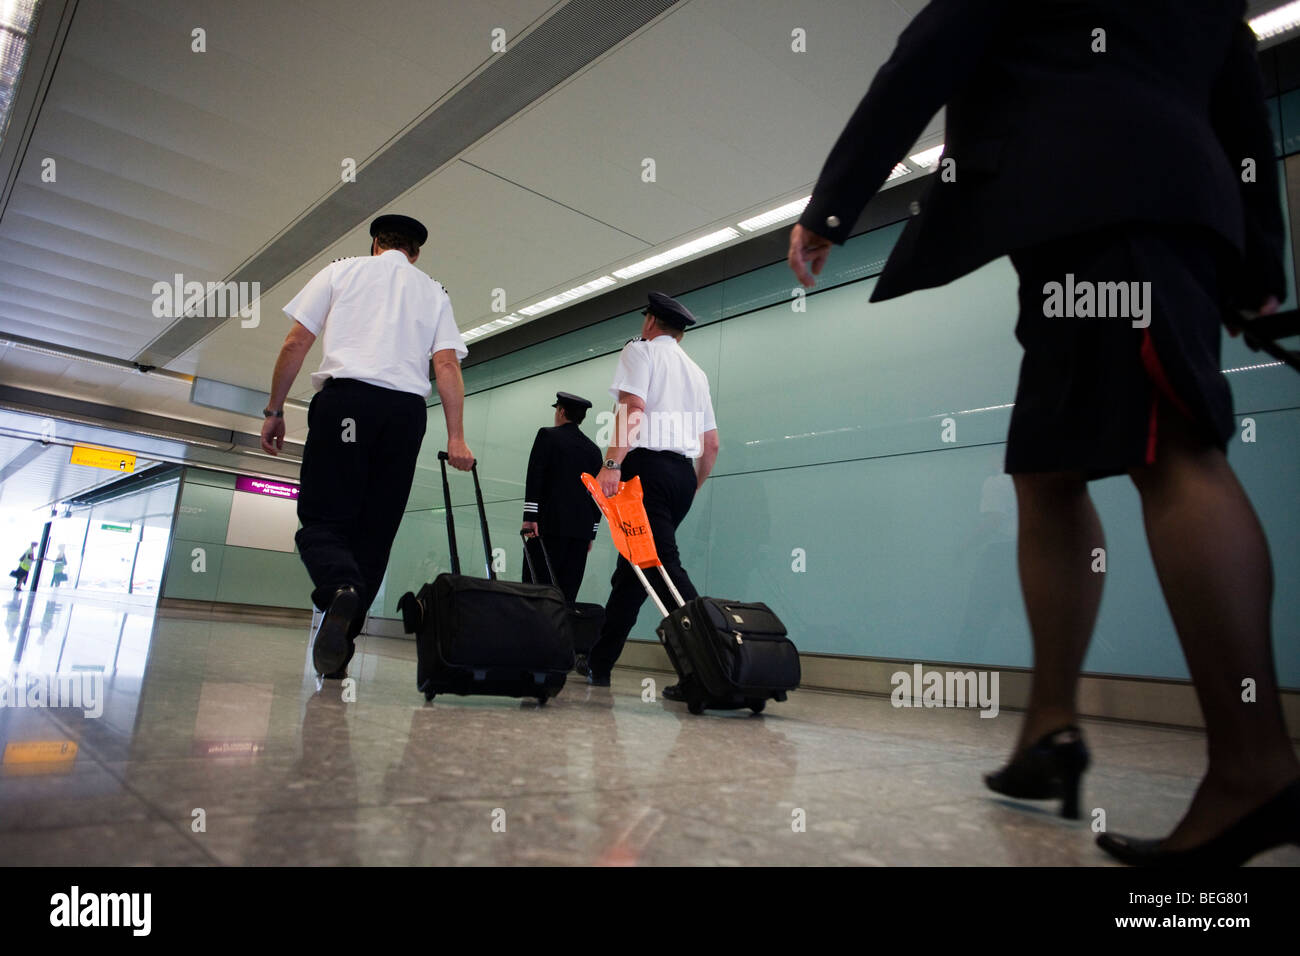 Arriving British Airways flight deck and cabin crew stride through arrivals after long-haul flight to Heathrow Airport's - Stock Image